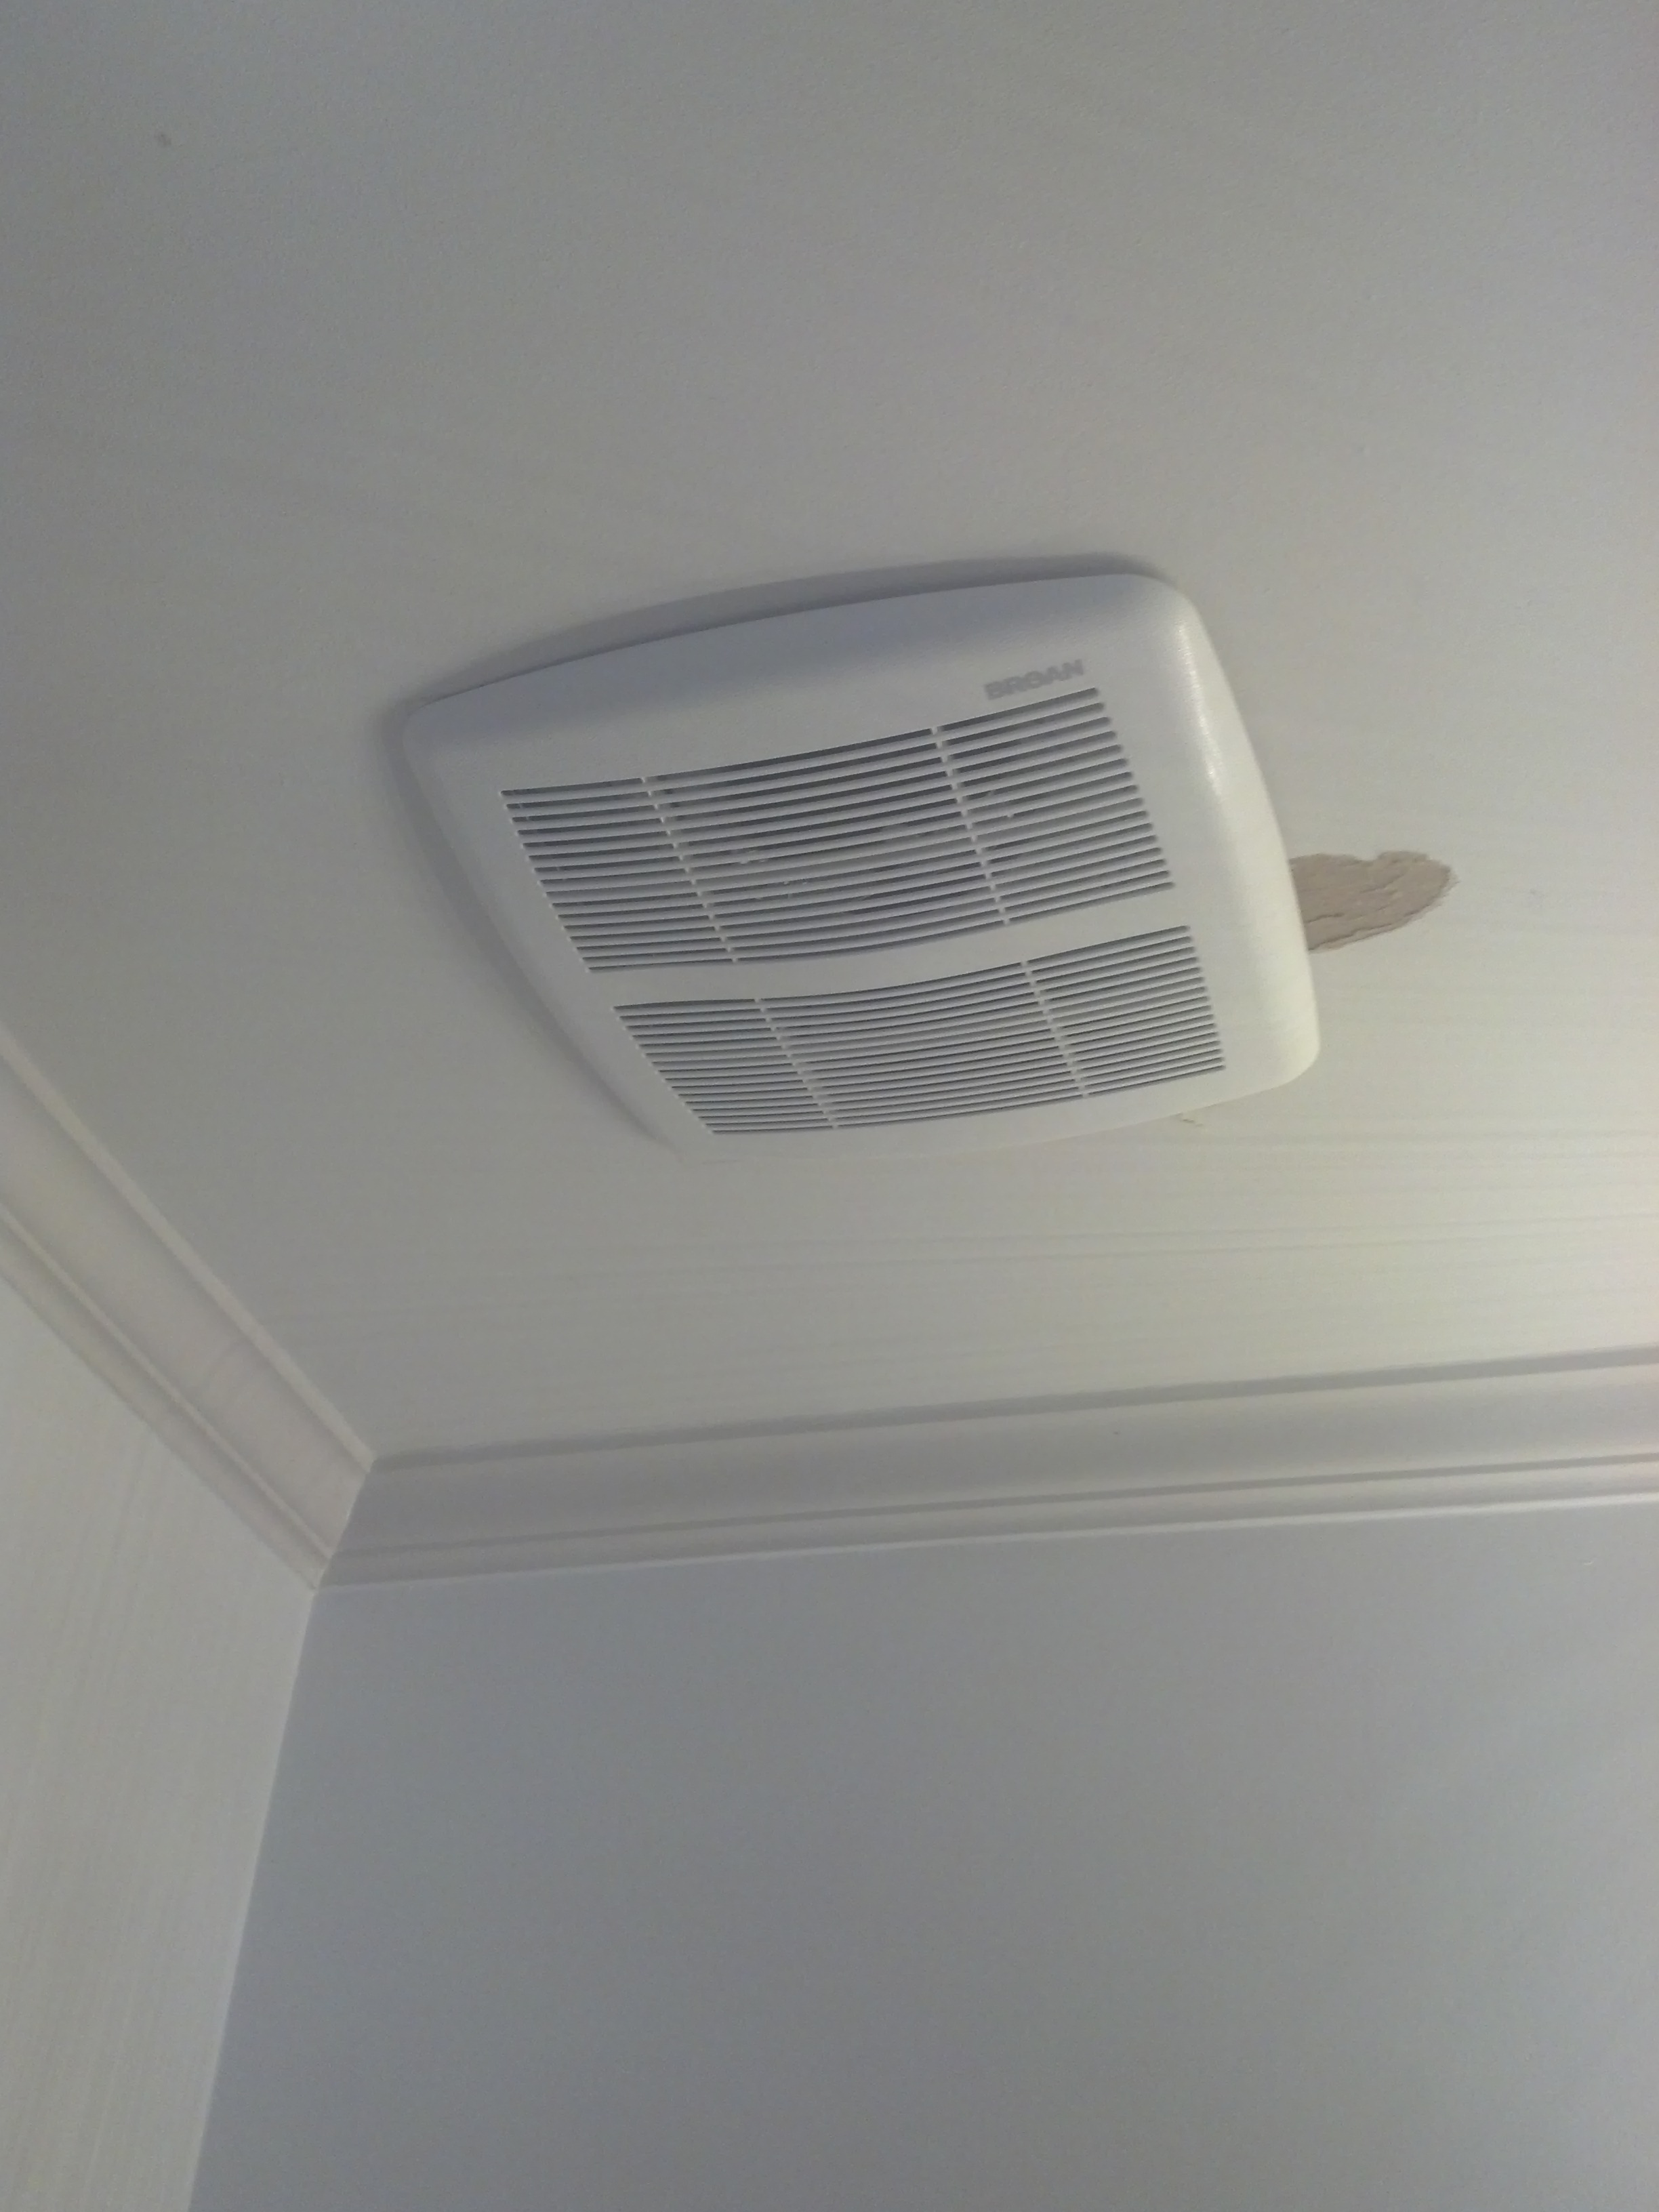 DIY Bathroom Fan Replacement « Independence Homestead